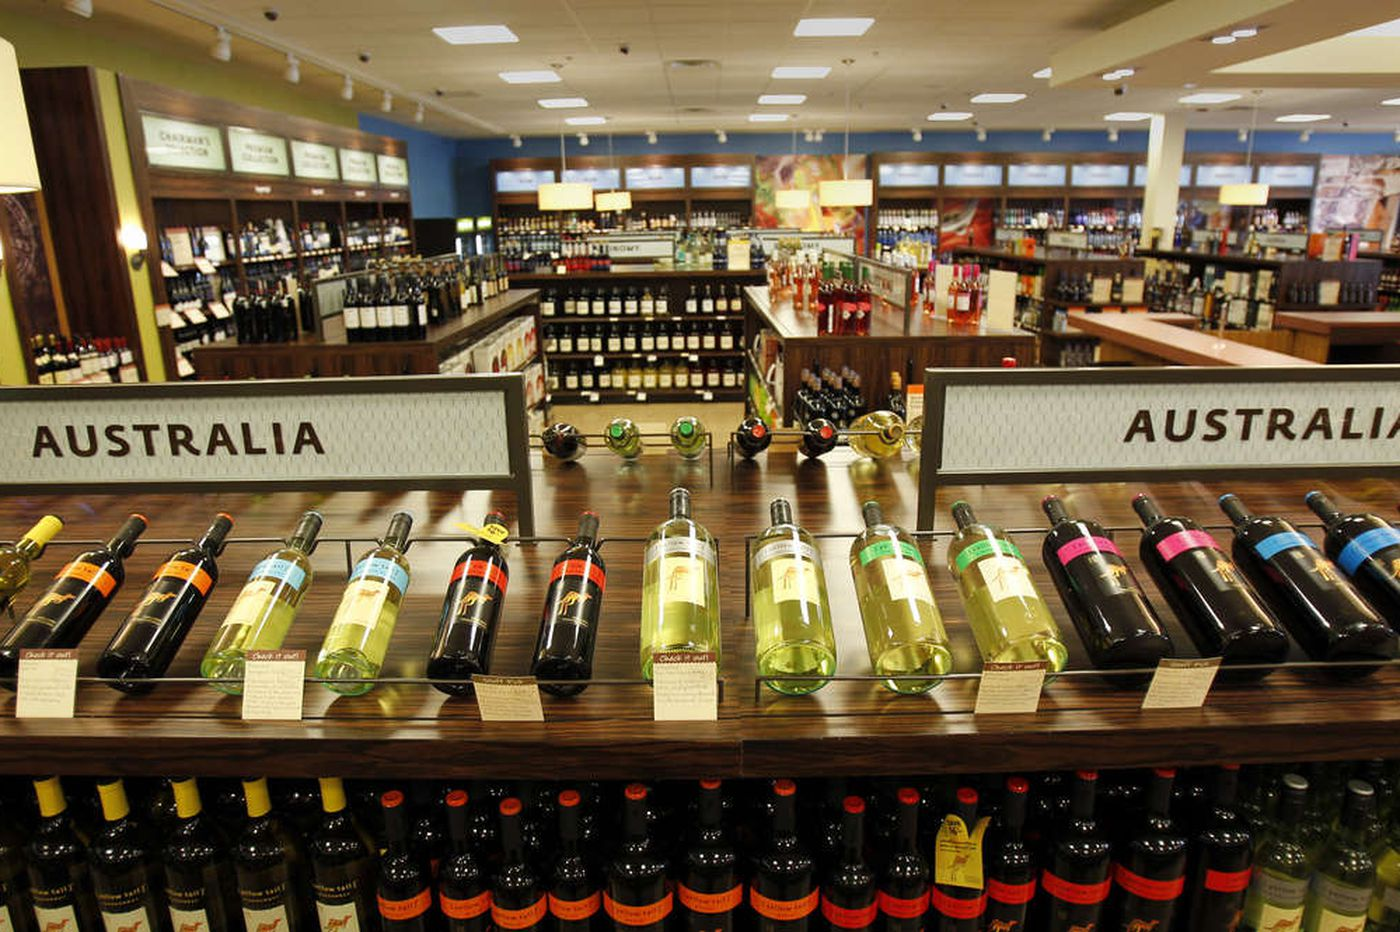 Groups warn Pennsylvania about setting liquor prices 'in secret, behind closed doors'